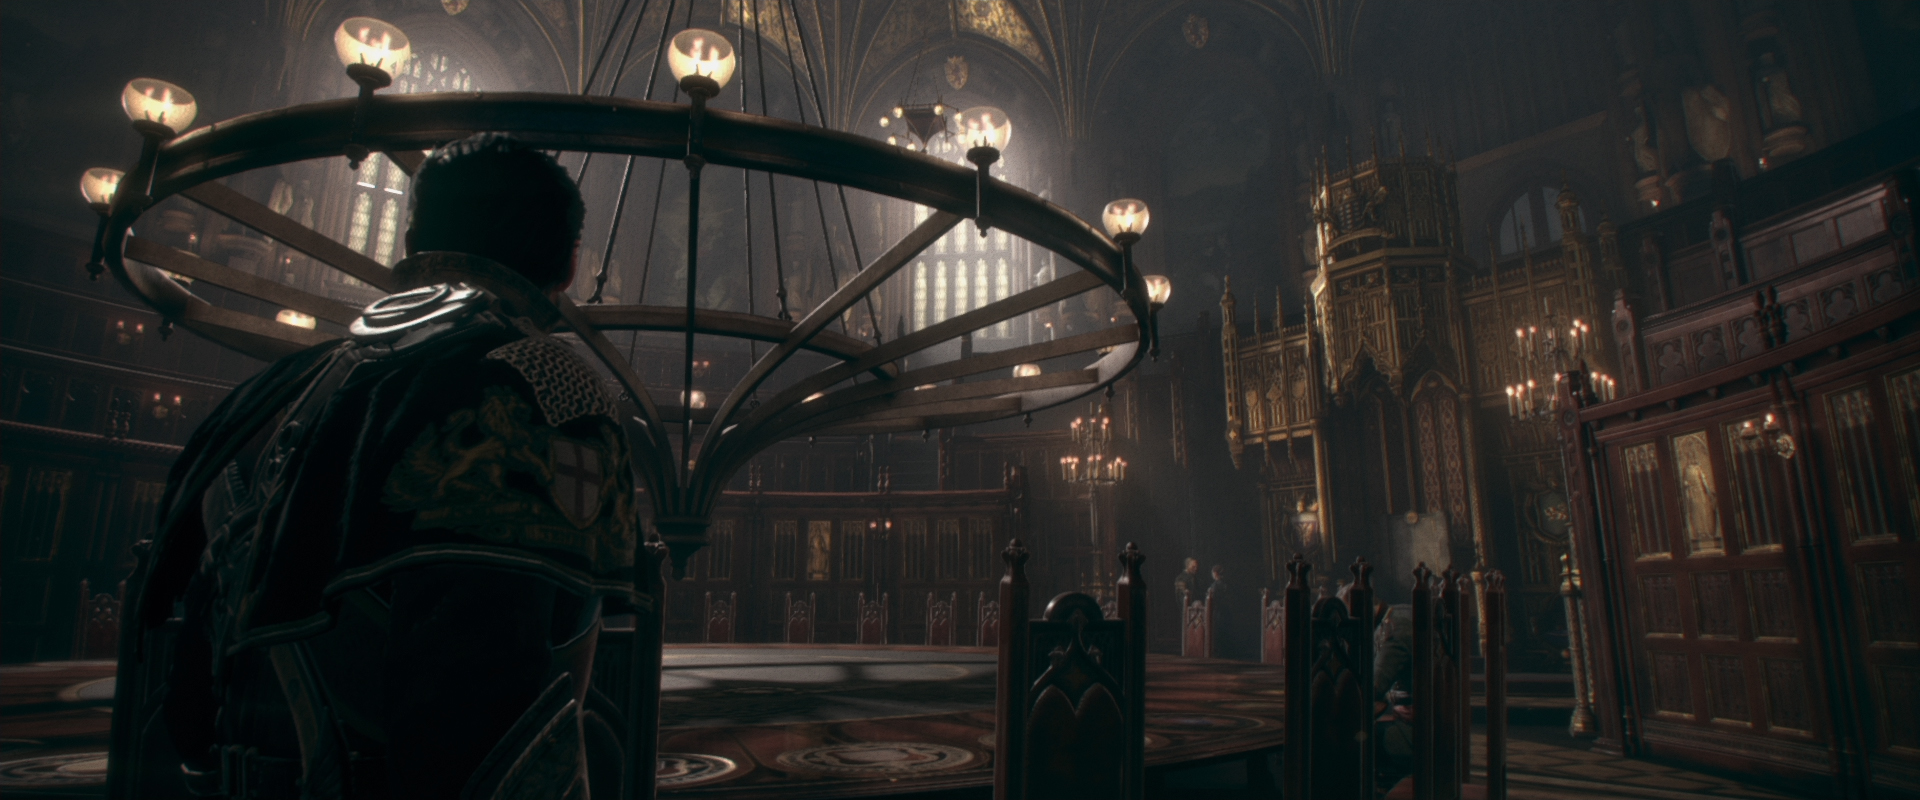 The Order 1886 Direct-Feed Screenshots Will Blow Your Mind ...